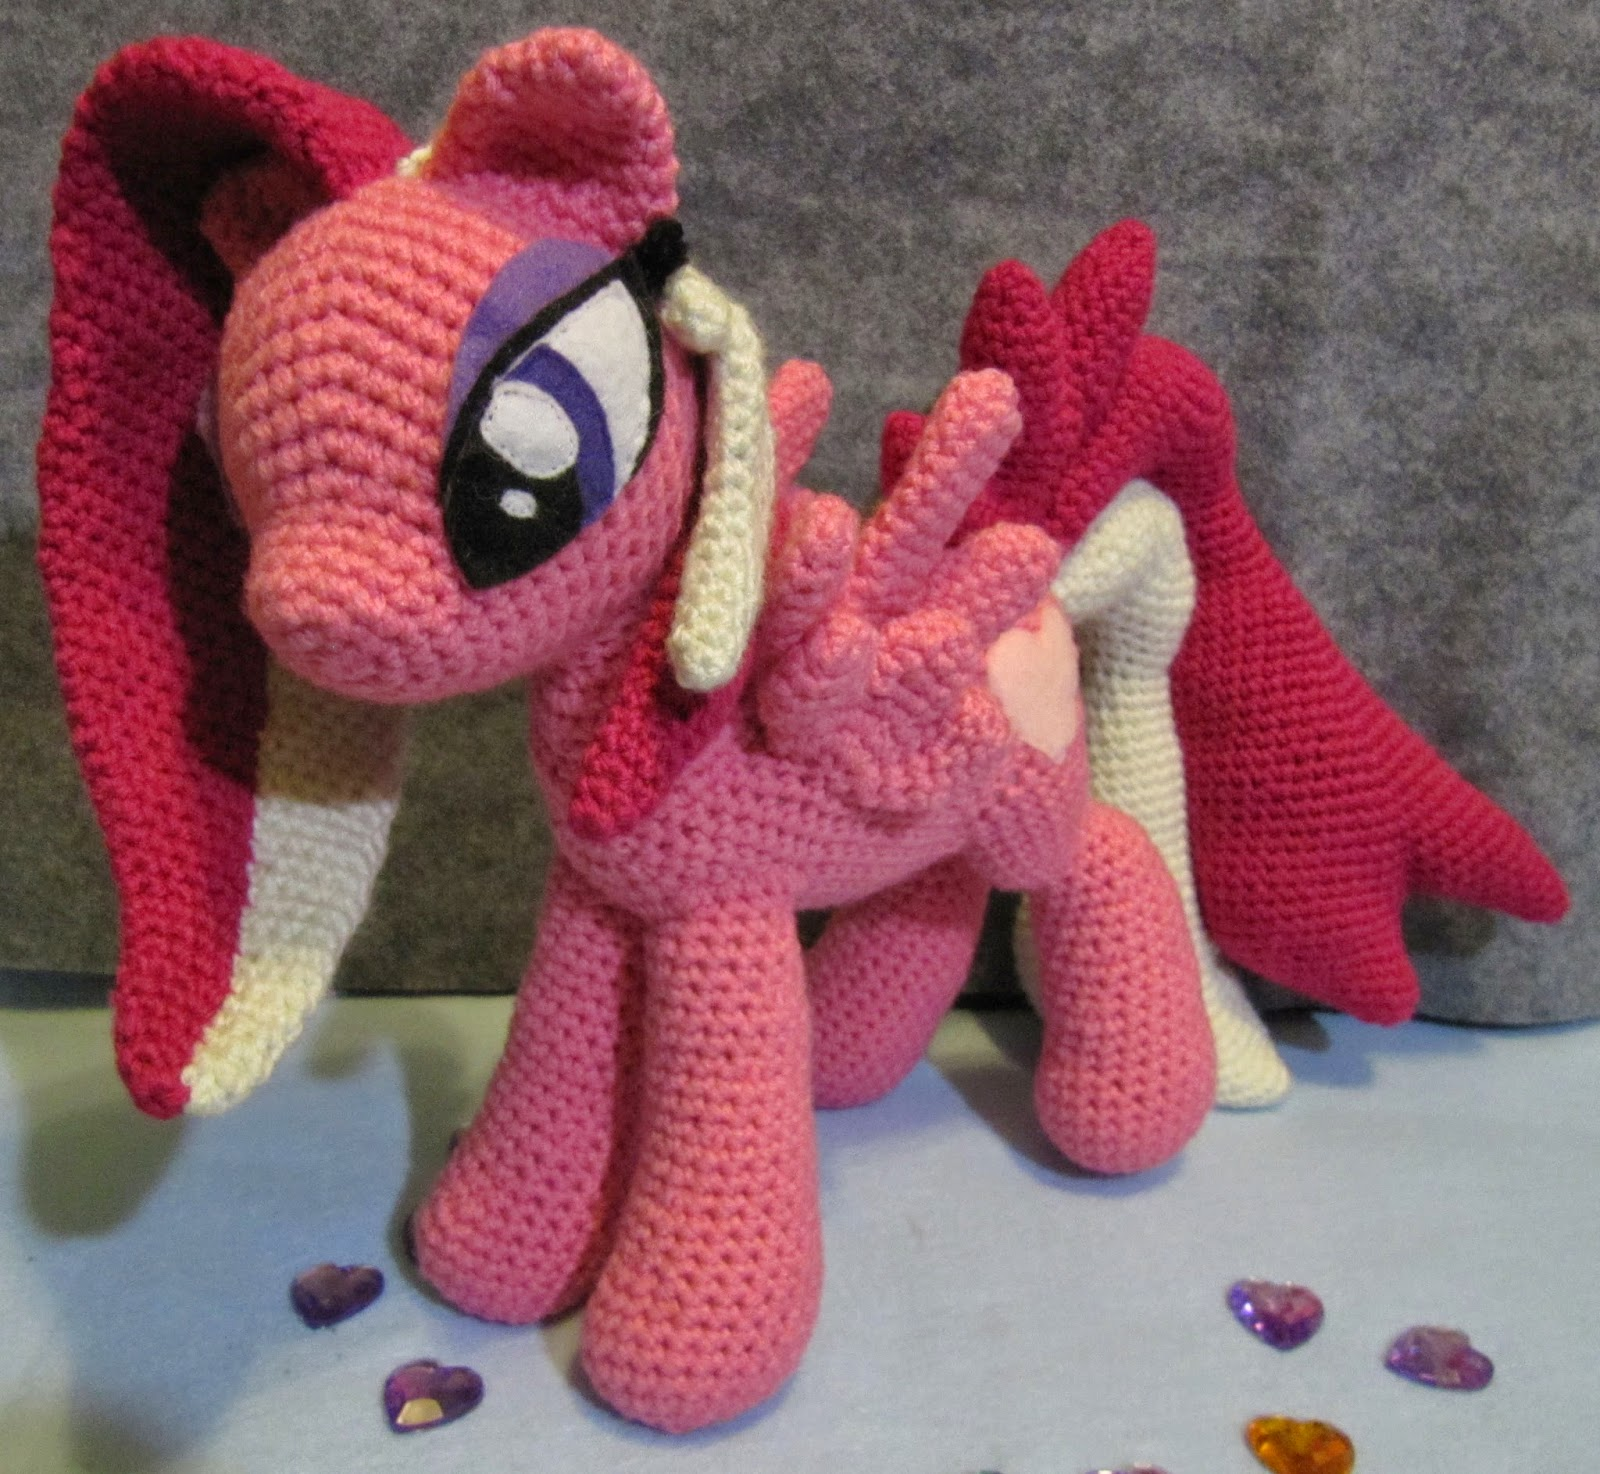 Free Crochet Pattern For My Little Pony Eyes : Nerdy Knitter Designs